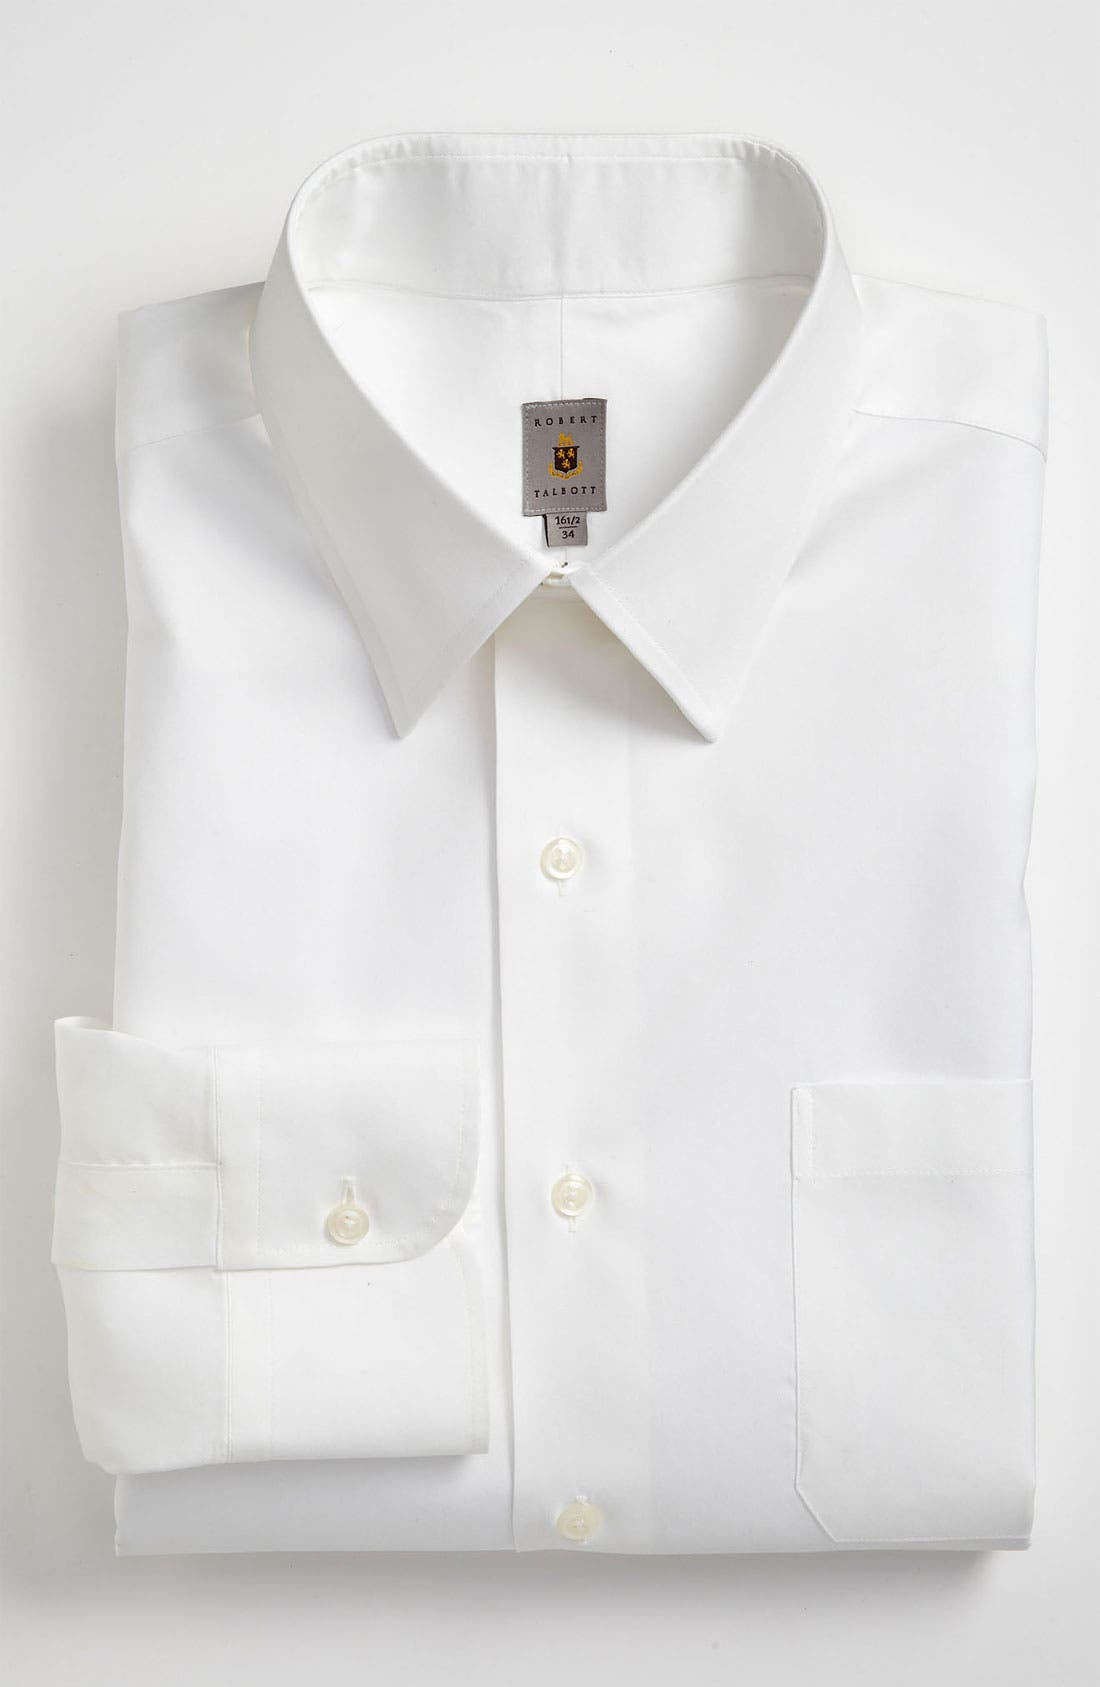 Alternate Image 1 Selected - Robert Talbott Regular Fit Dress Shirt (Online Only)